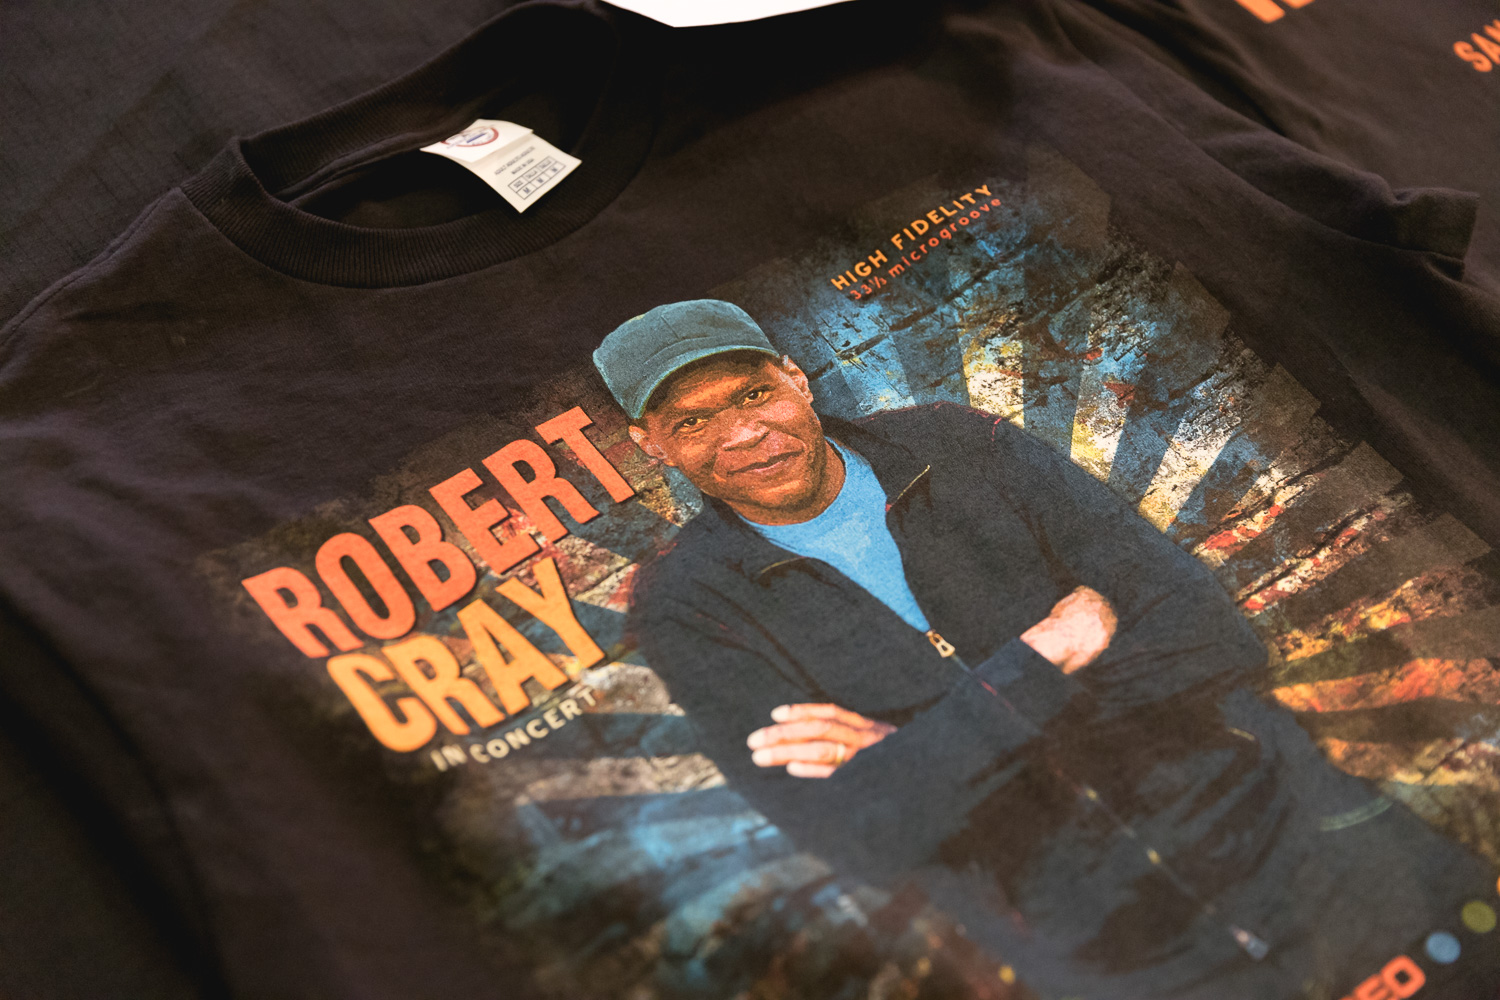 Robert Cray T-shirts for sale. Photo: @Lmsorenson.net